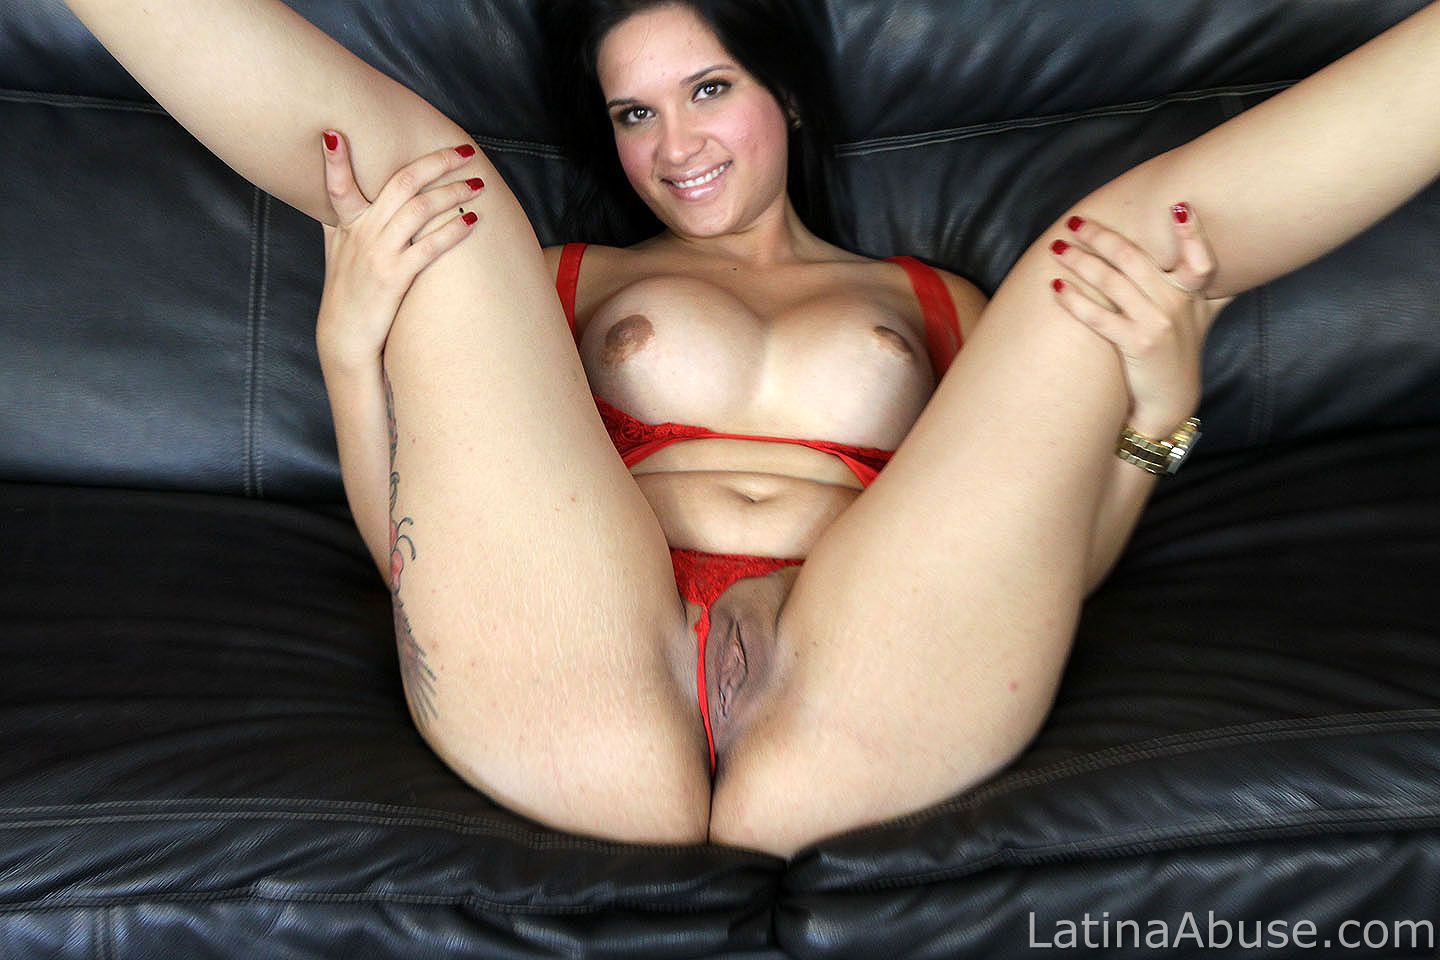 Elena cuban latina abuse porn video opinion you